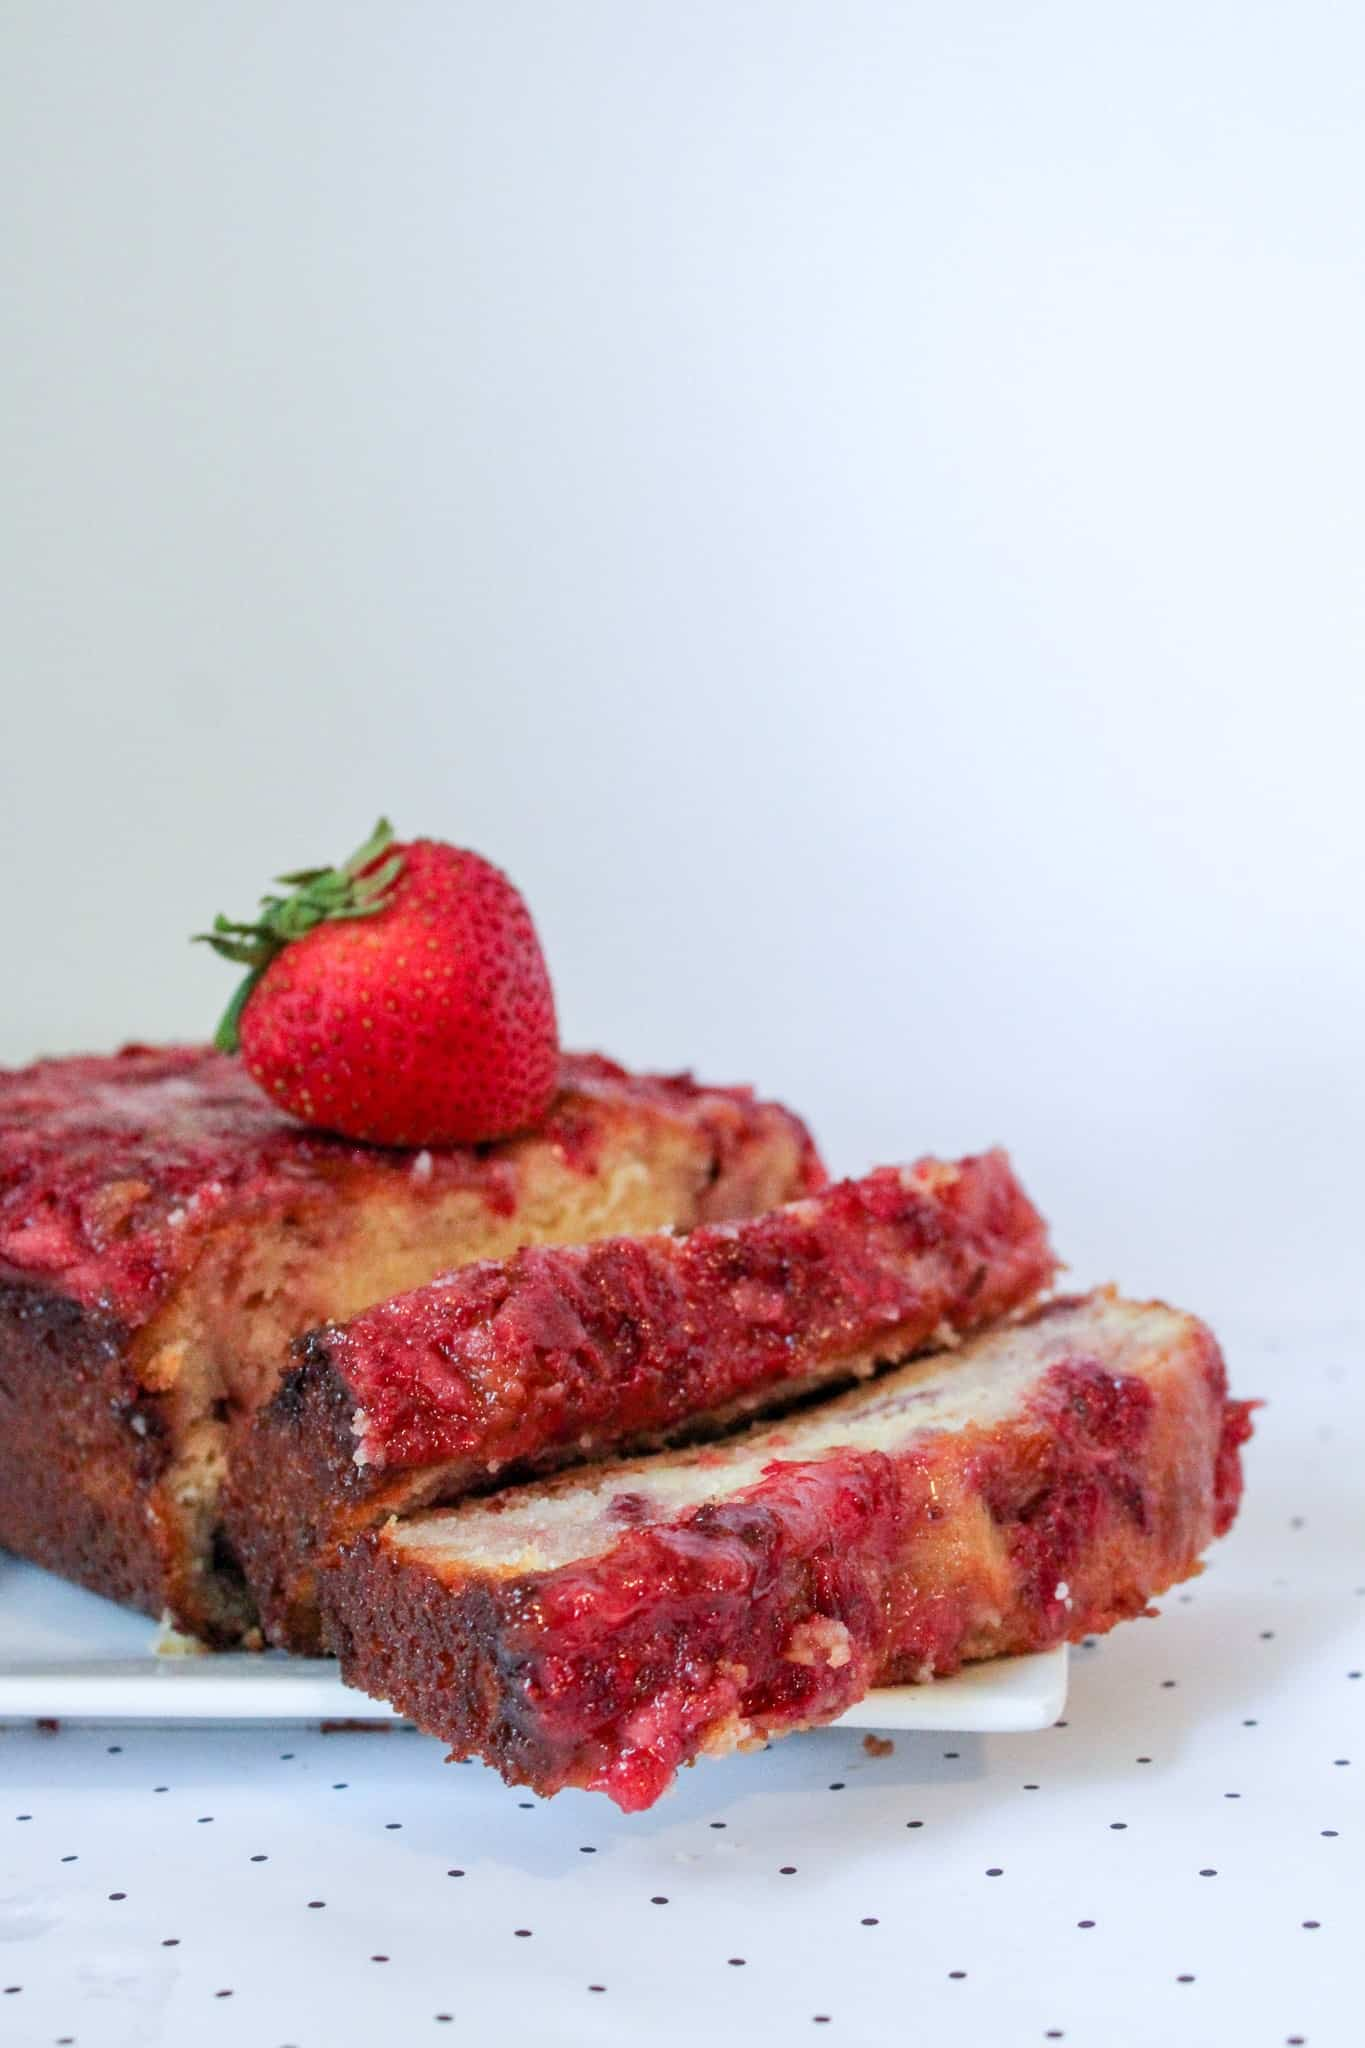 fresh strawberry pound cake on table